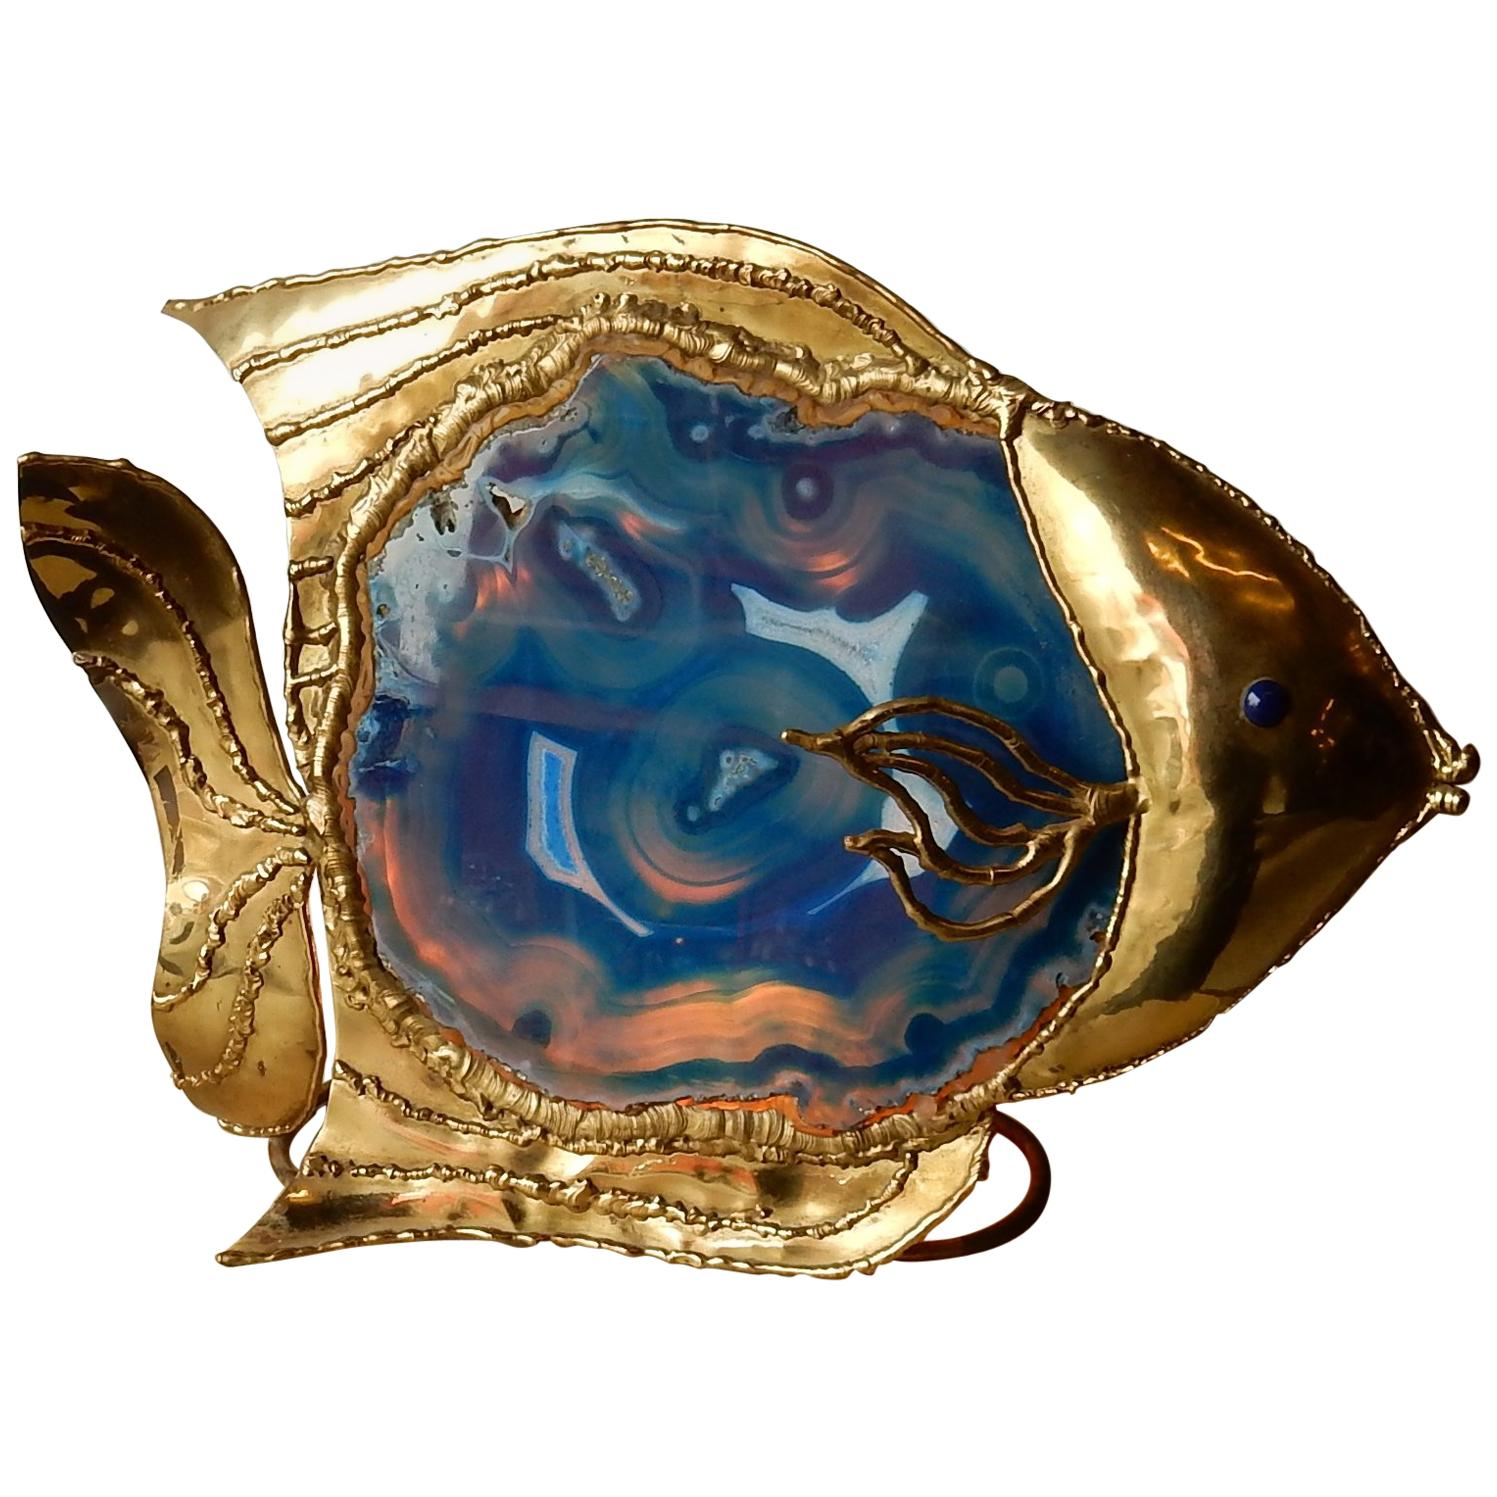 1970 Fish Lamp with Blue Agate Style Duval Brasseur Enlightening